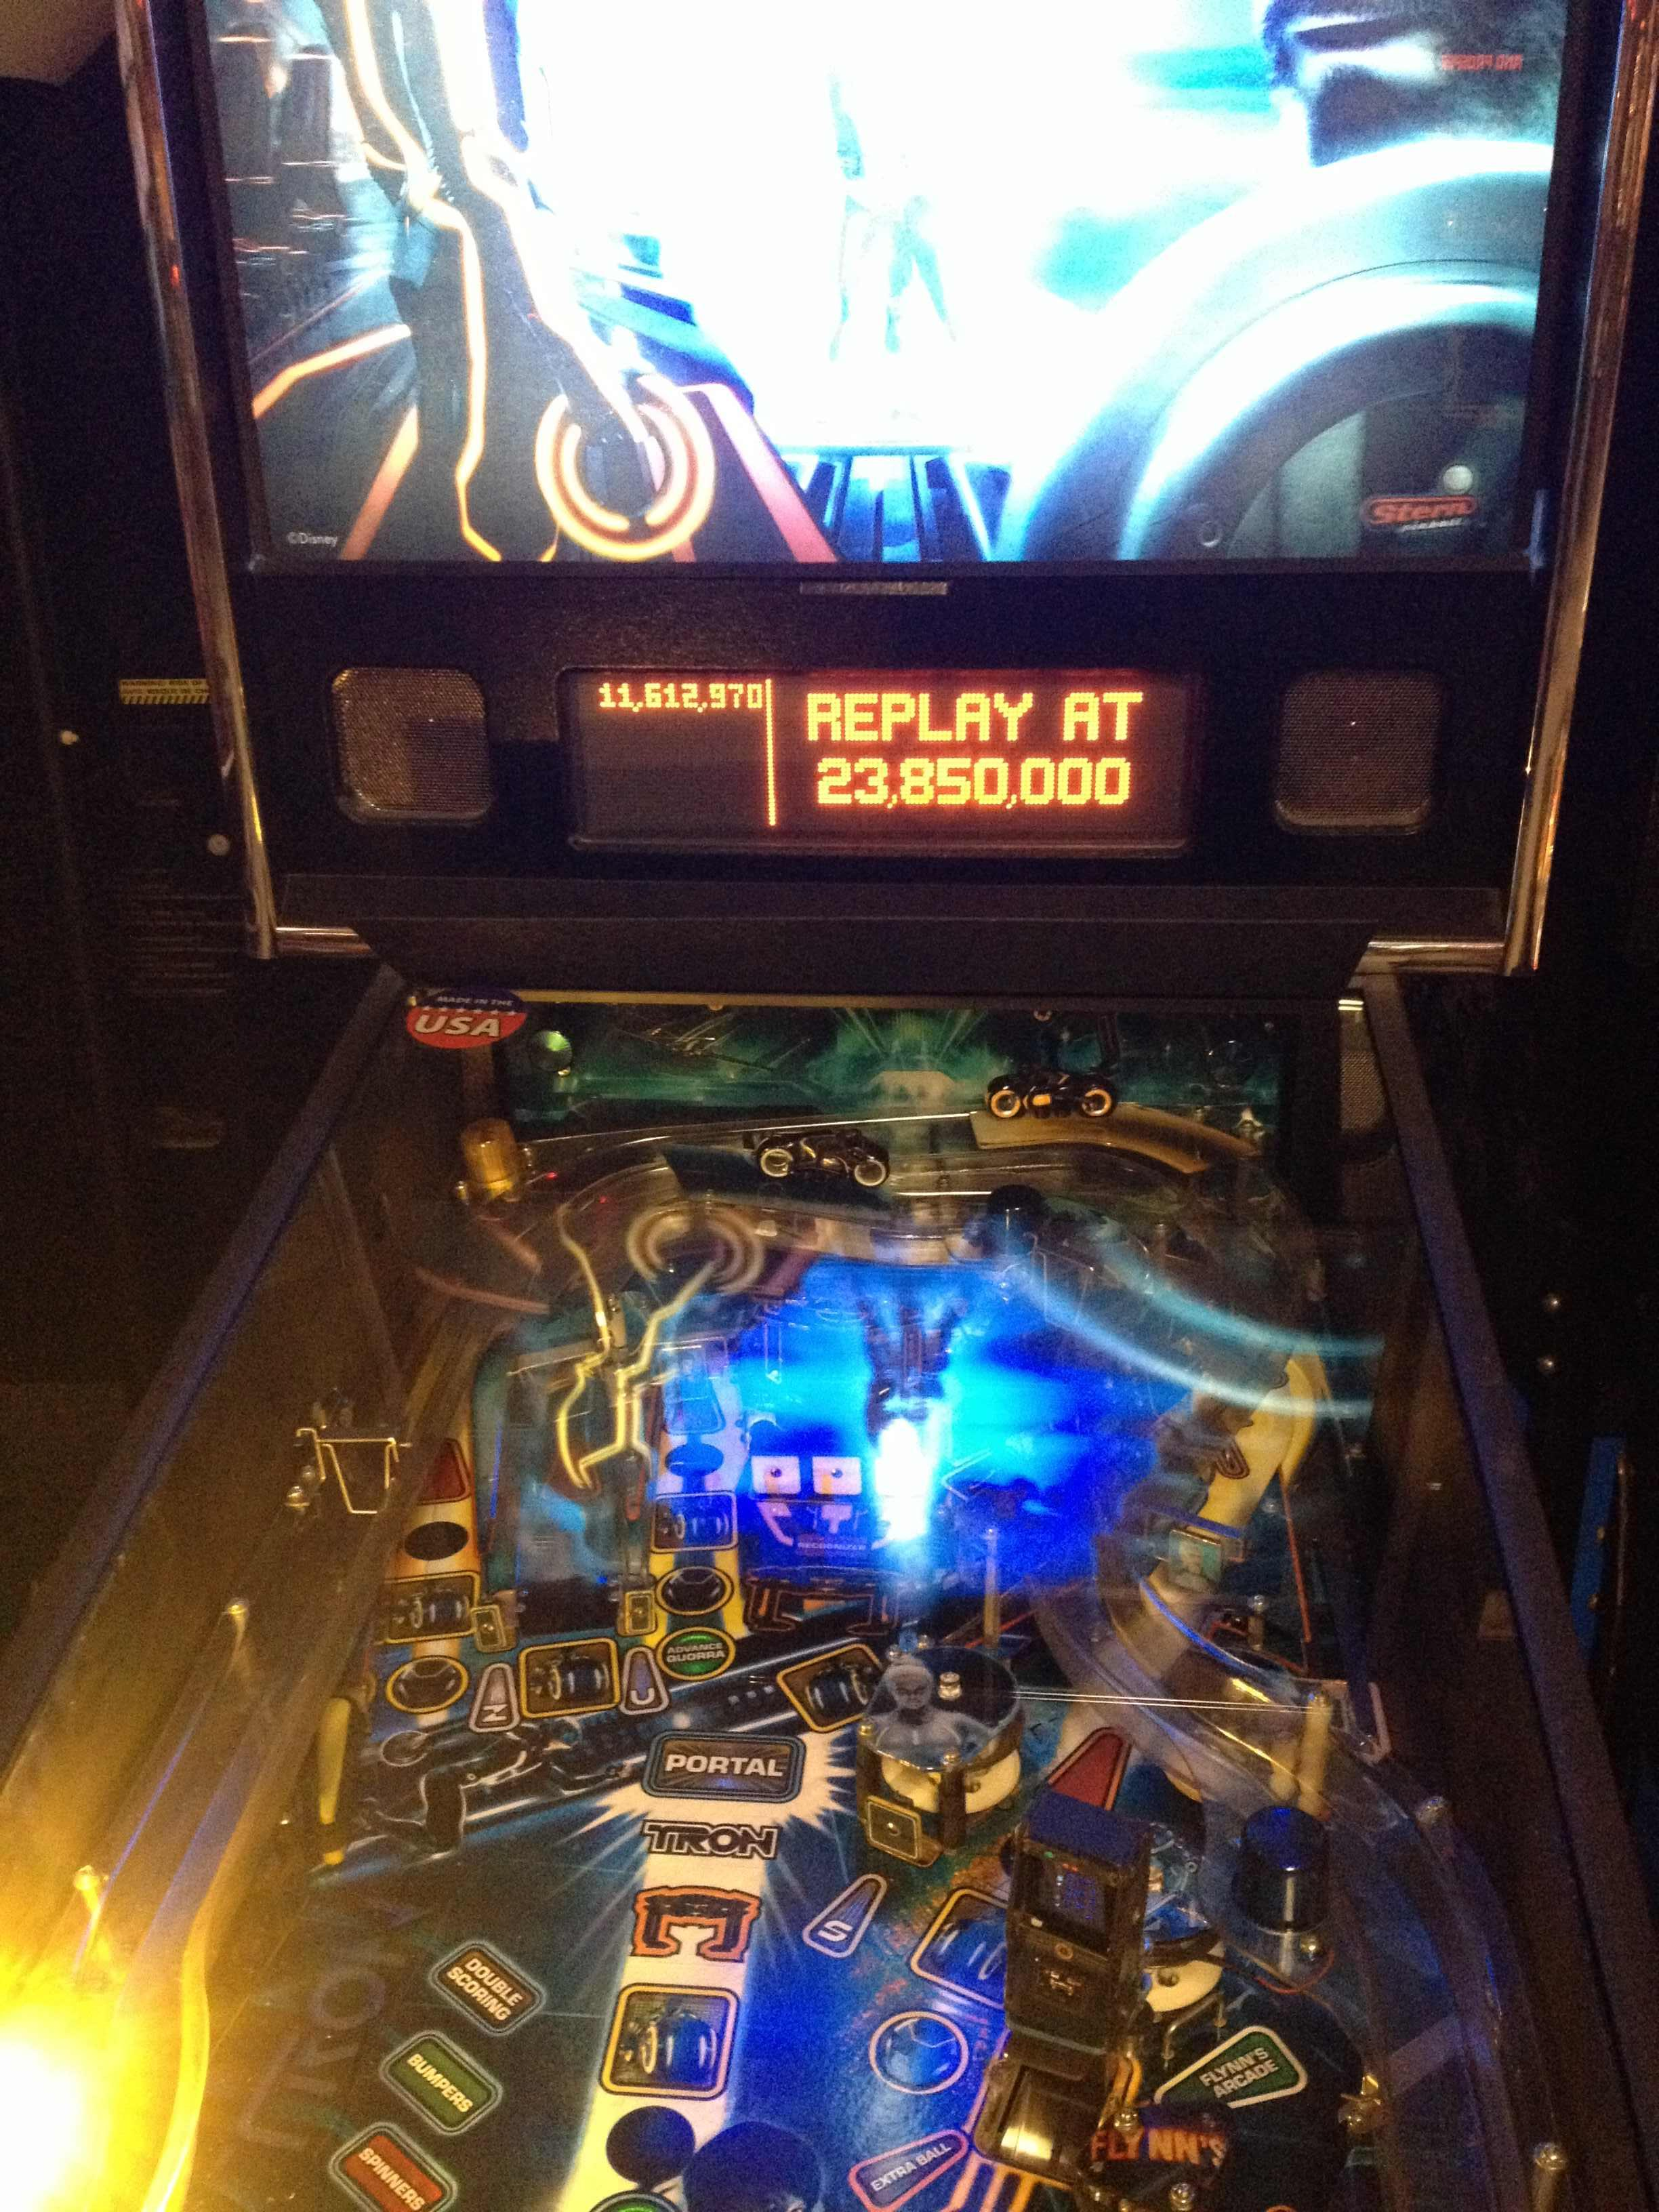 KillerB: Tron (Pinball: 3 Balls) 11,612,970 points on 2013-10-06 01:11:33